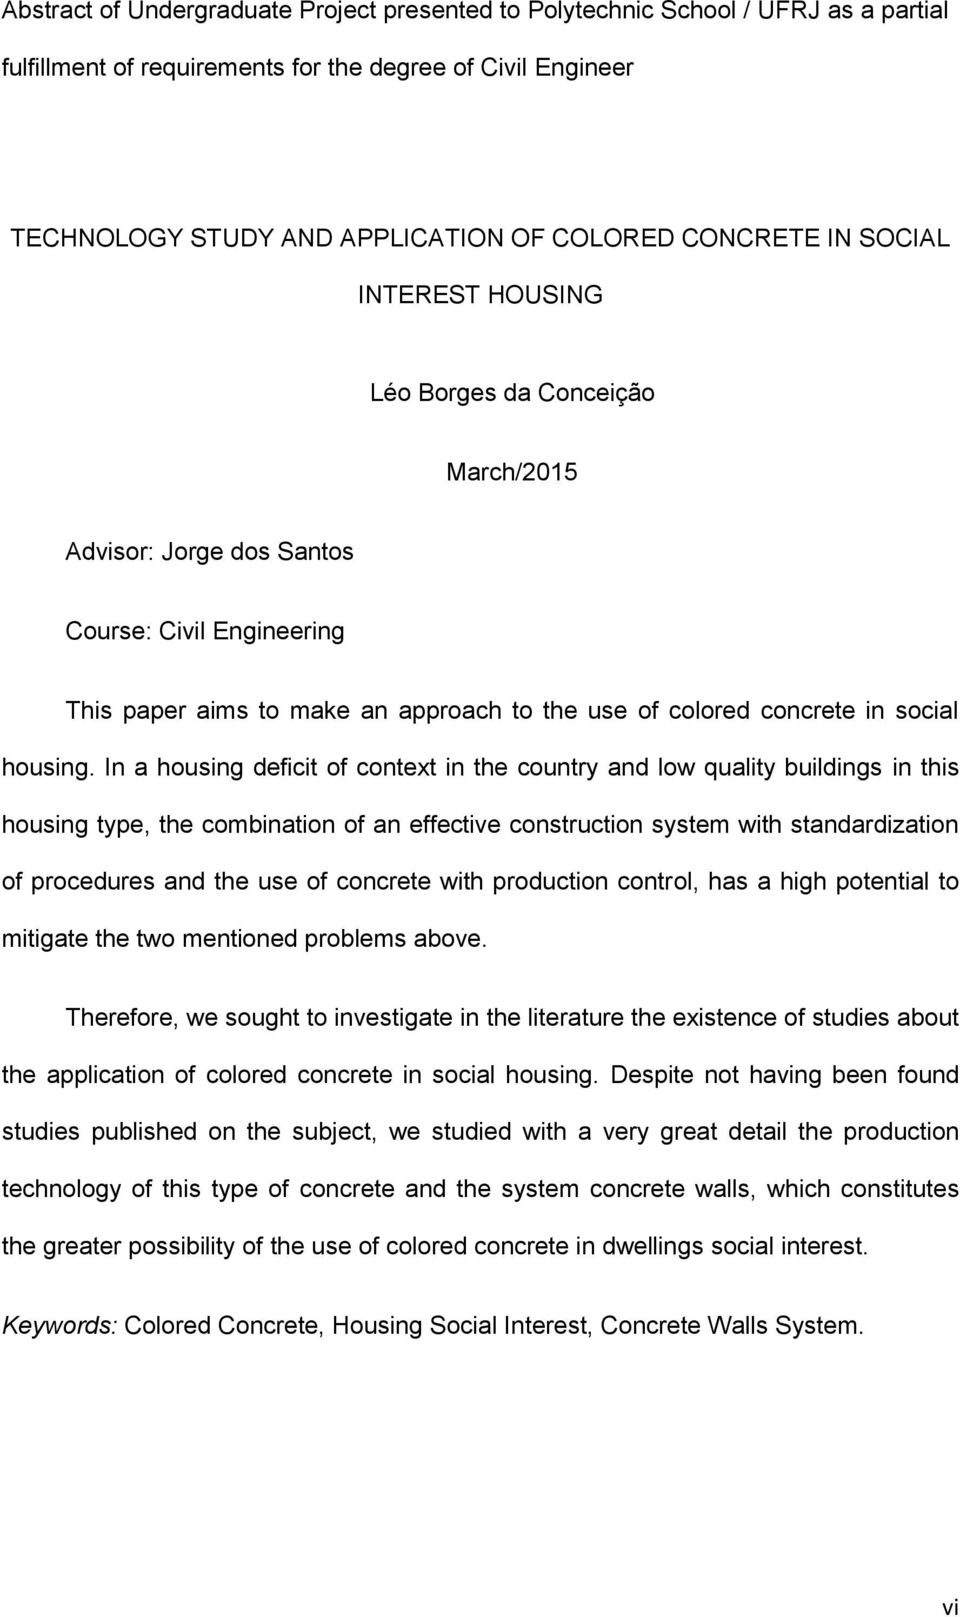 In a housing deficit of context in the country and low quality buildings in this housing type, the combination of an effective construction system with standardization of procedures and the use of